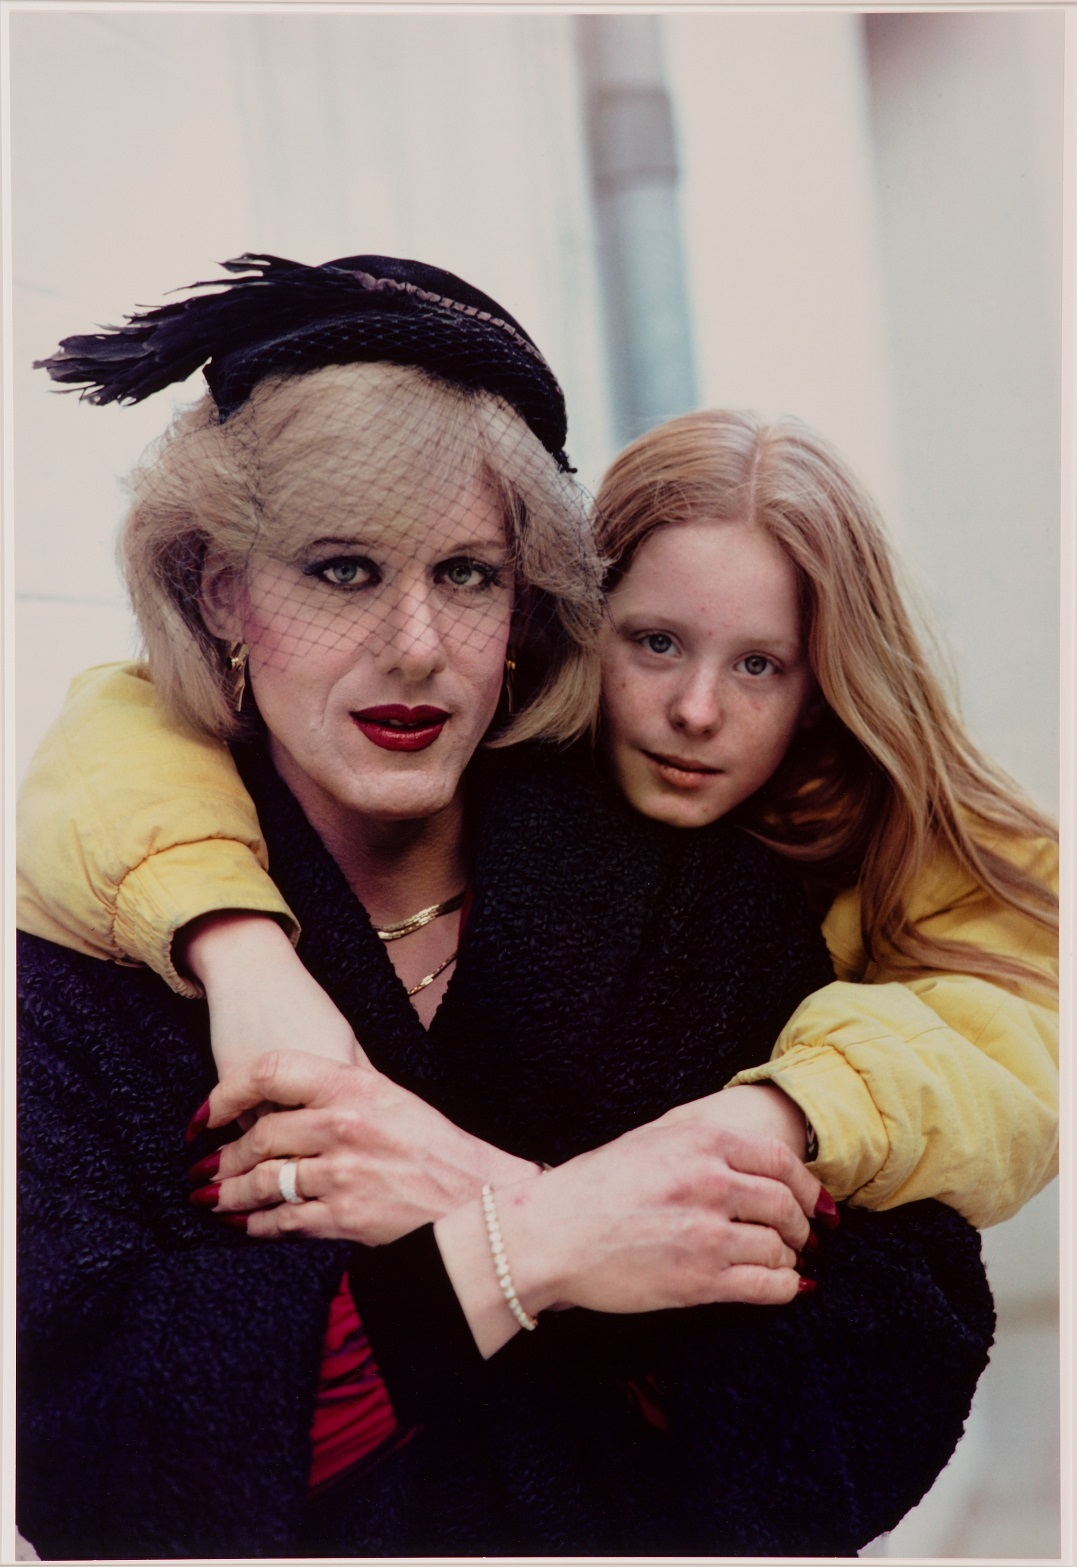 A trans woman in a black jacket and hat crosses her hands in front of her chest. She holds the hands of a girl dressed in yellow who leans over her from behind, her chin propped on the woman's proper left shoulder. The girl has long reddish-blond hair parted in the middle; the woman's hair is light blond and shorter. She wears jewelry, dark eyeliner, dark red lipstick, and her fingernails are painted dark red. The hat has a black feather and a short netted veil attached to it.